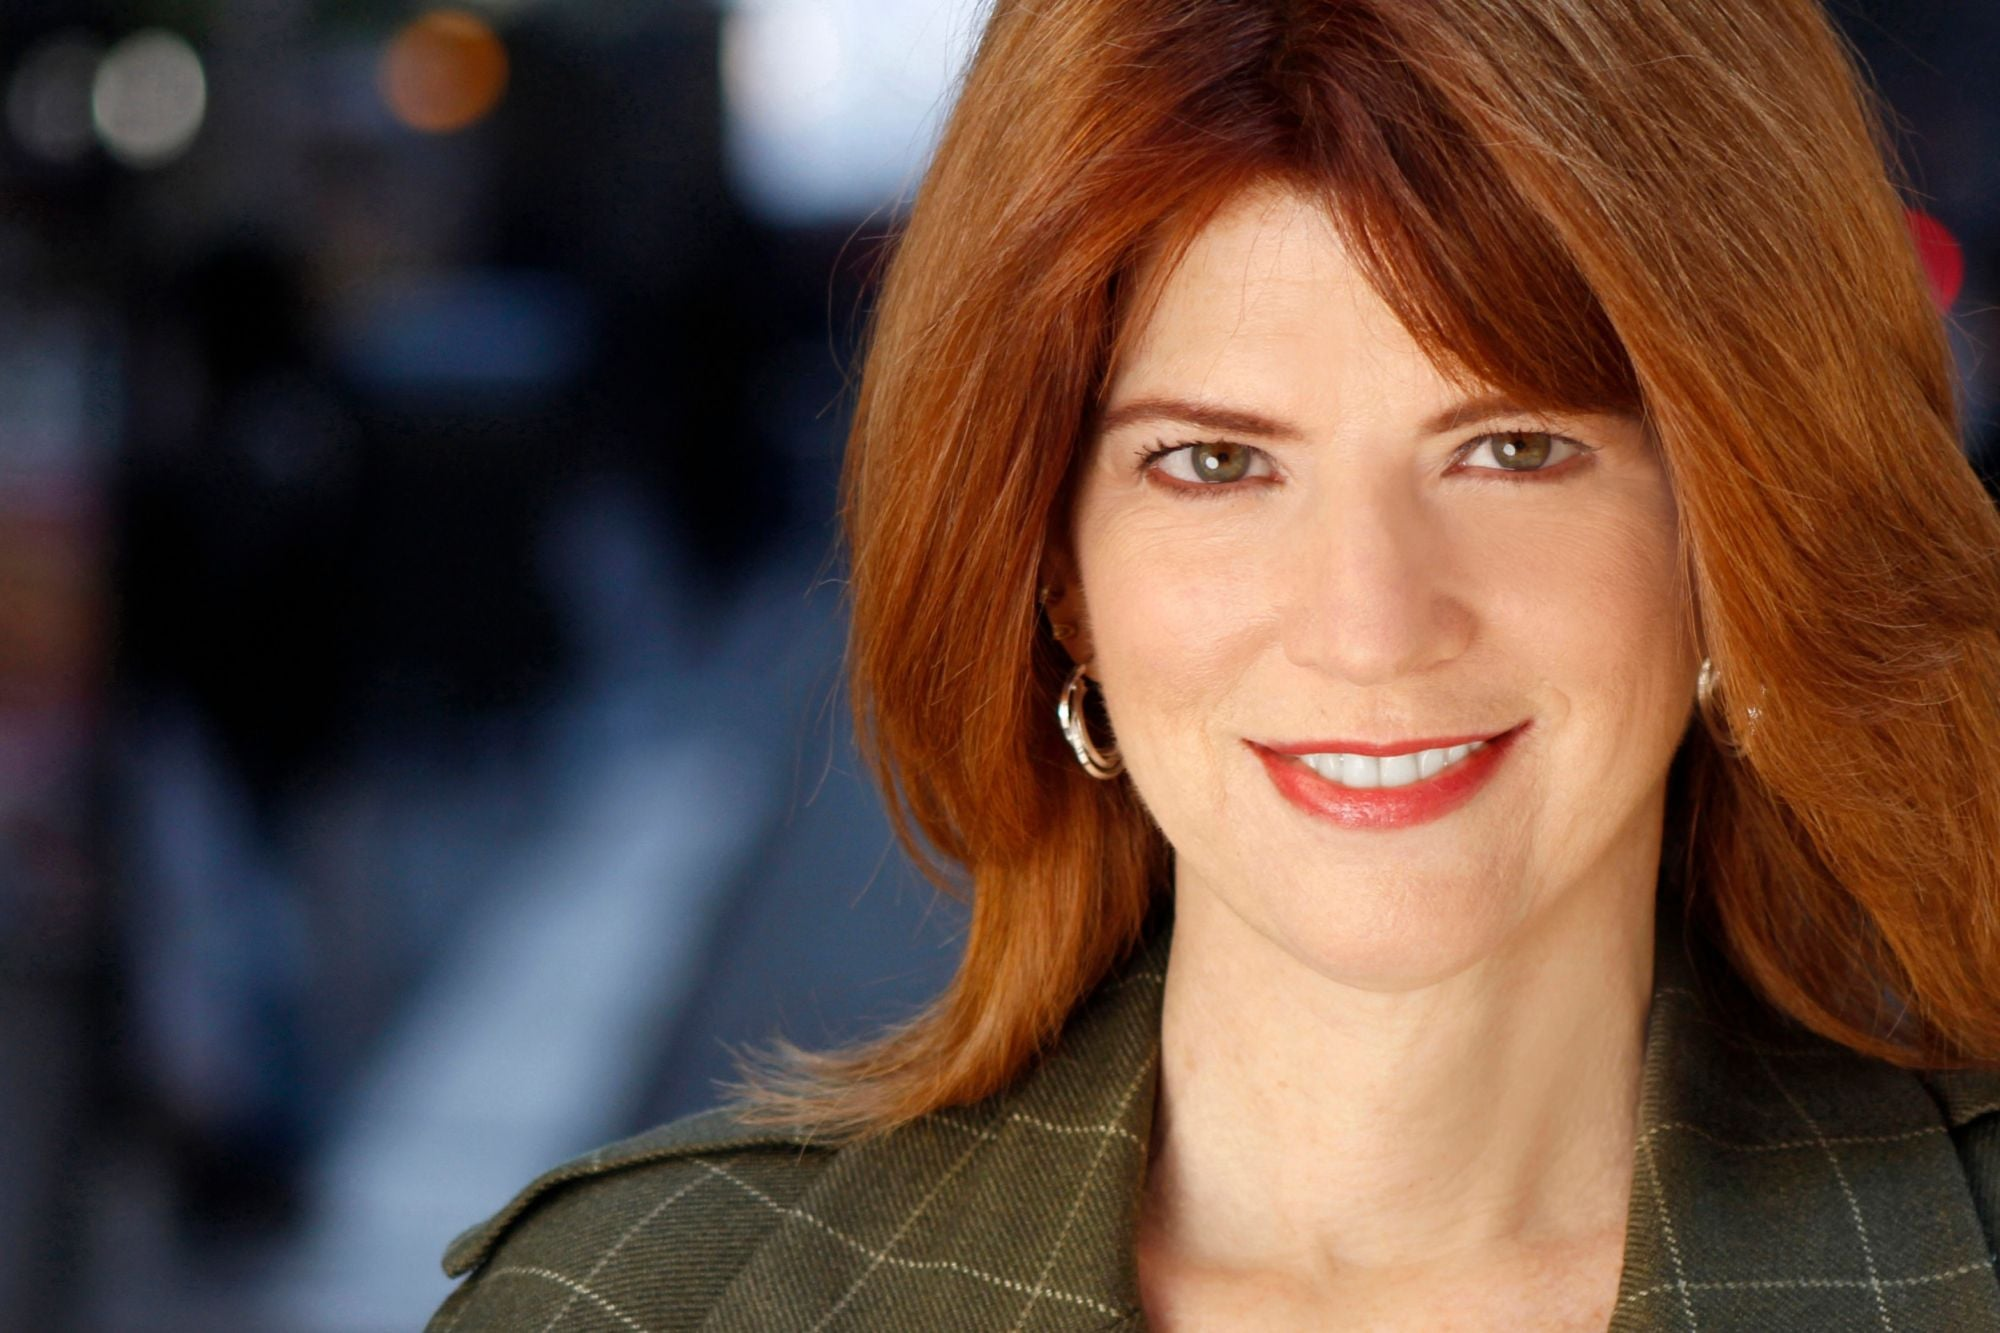 She Was the First Finance Journalist to Cover Cannabis, Now She Owns the Industry's Main Finance News Site